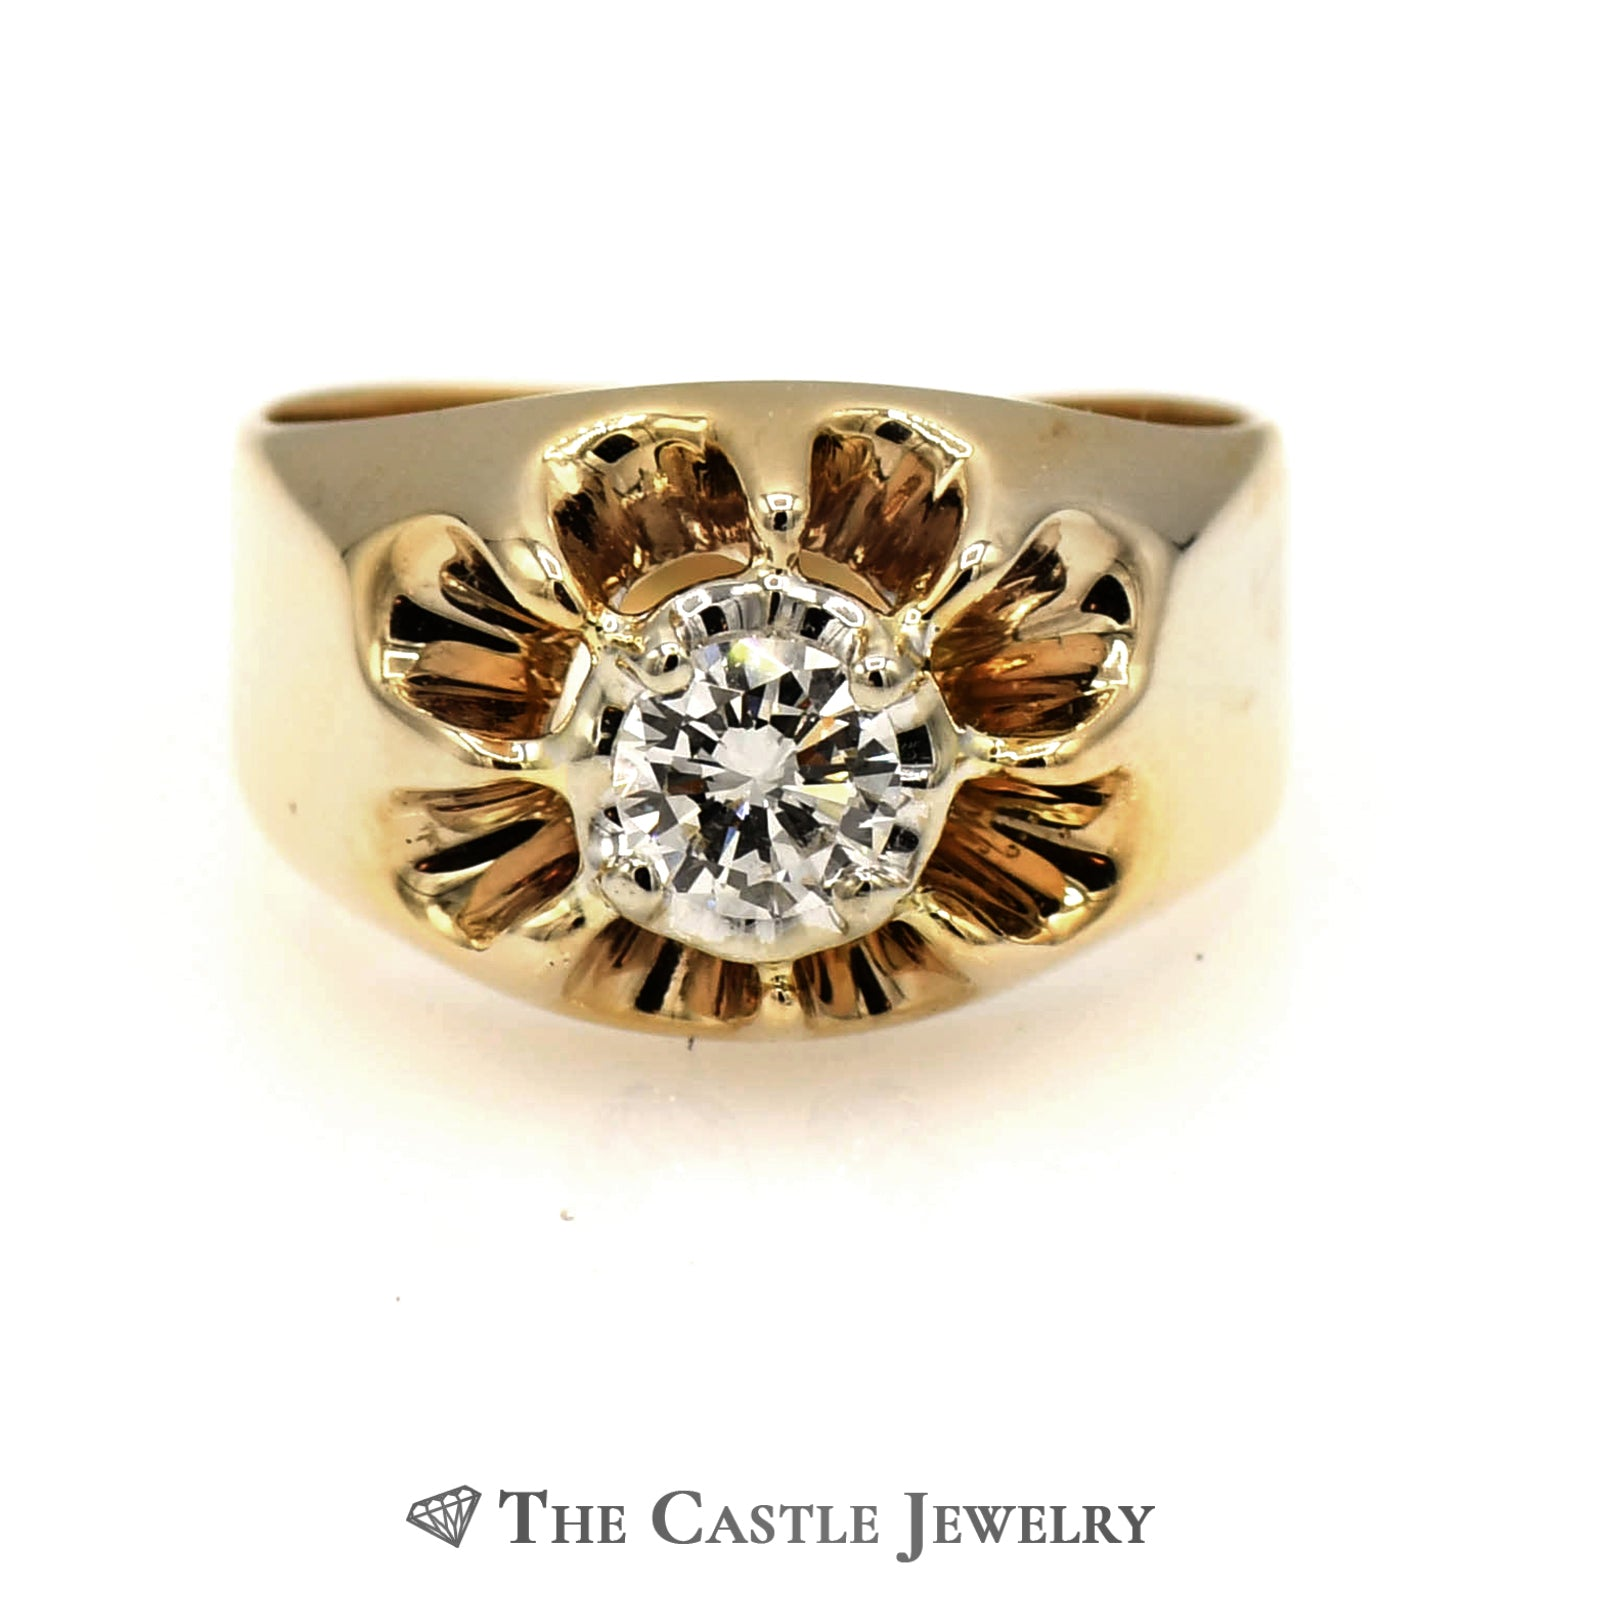 .38 Carat Diamond Solitaire Ring in Sunburst Style Mounting